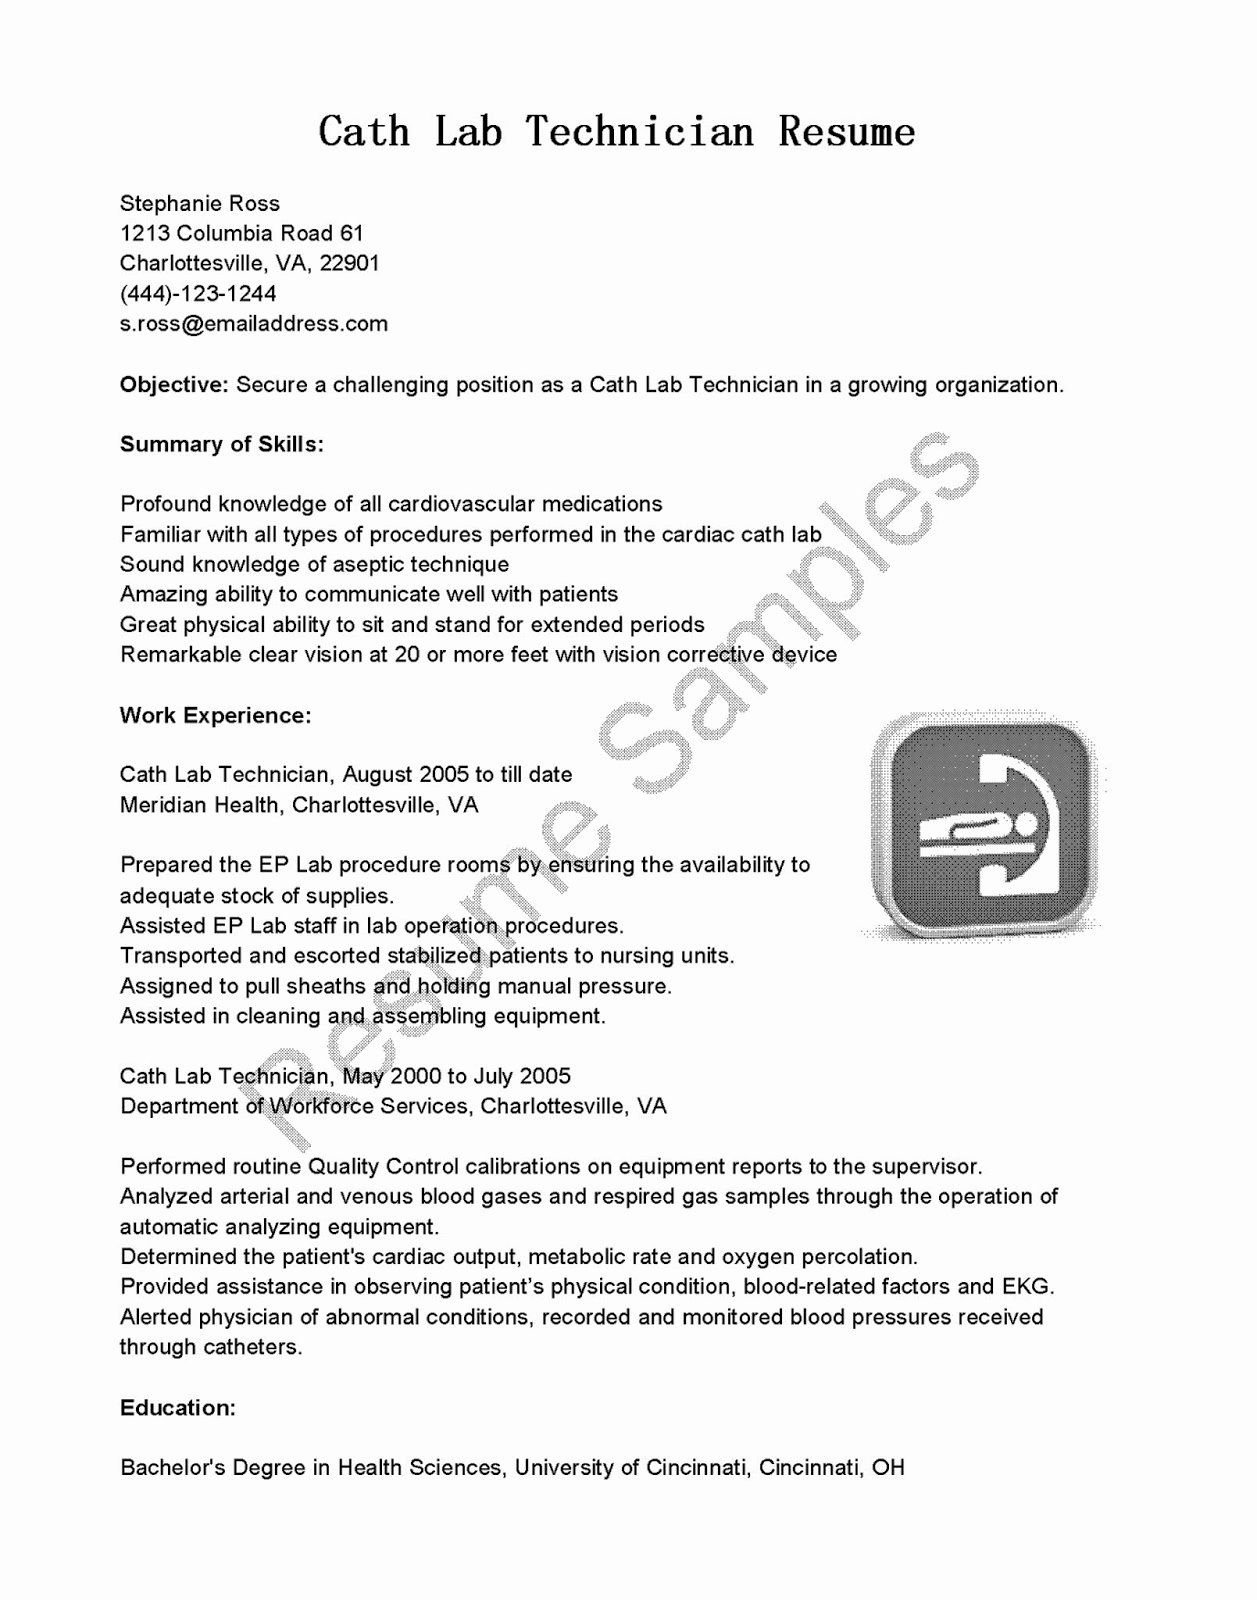 Lab Technician Resume Examples Luxury Resume Samples Cath